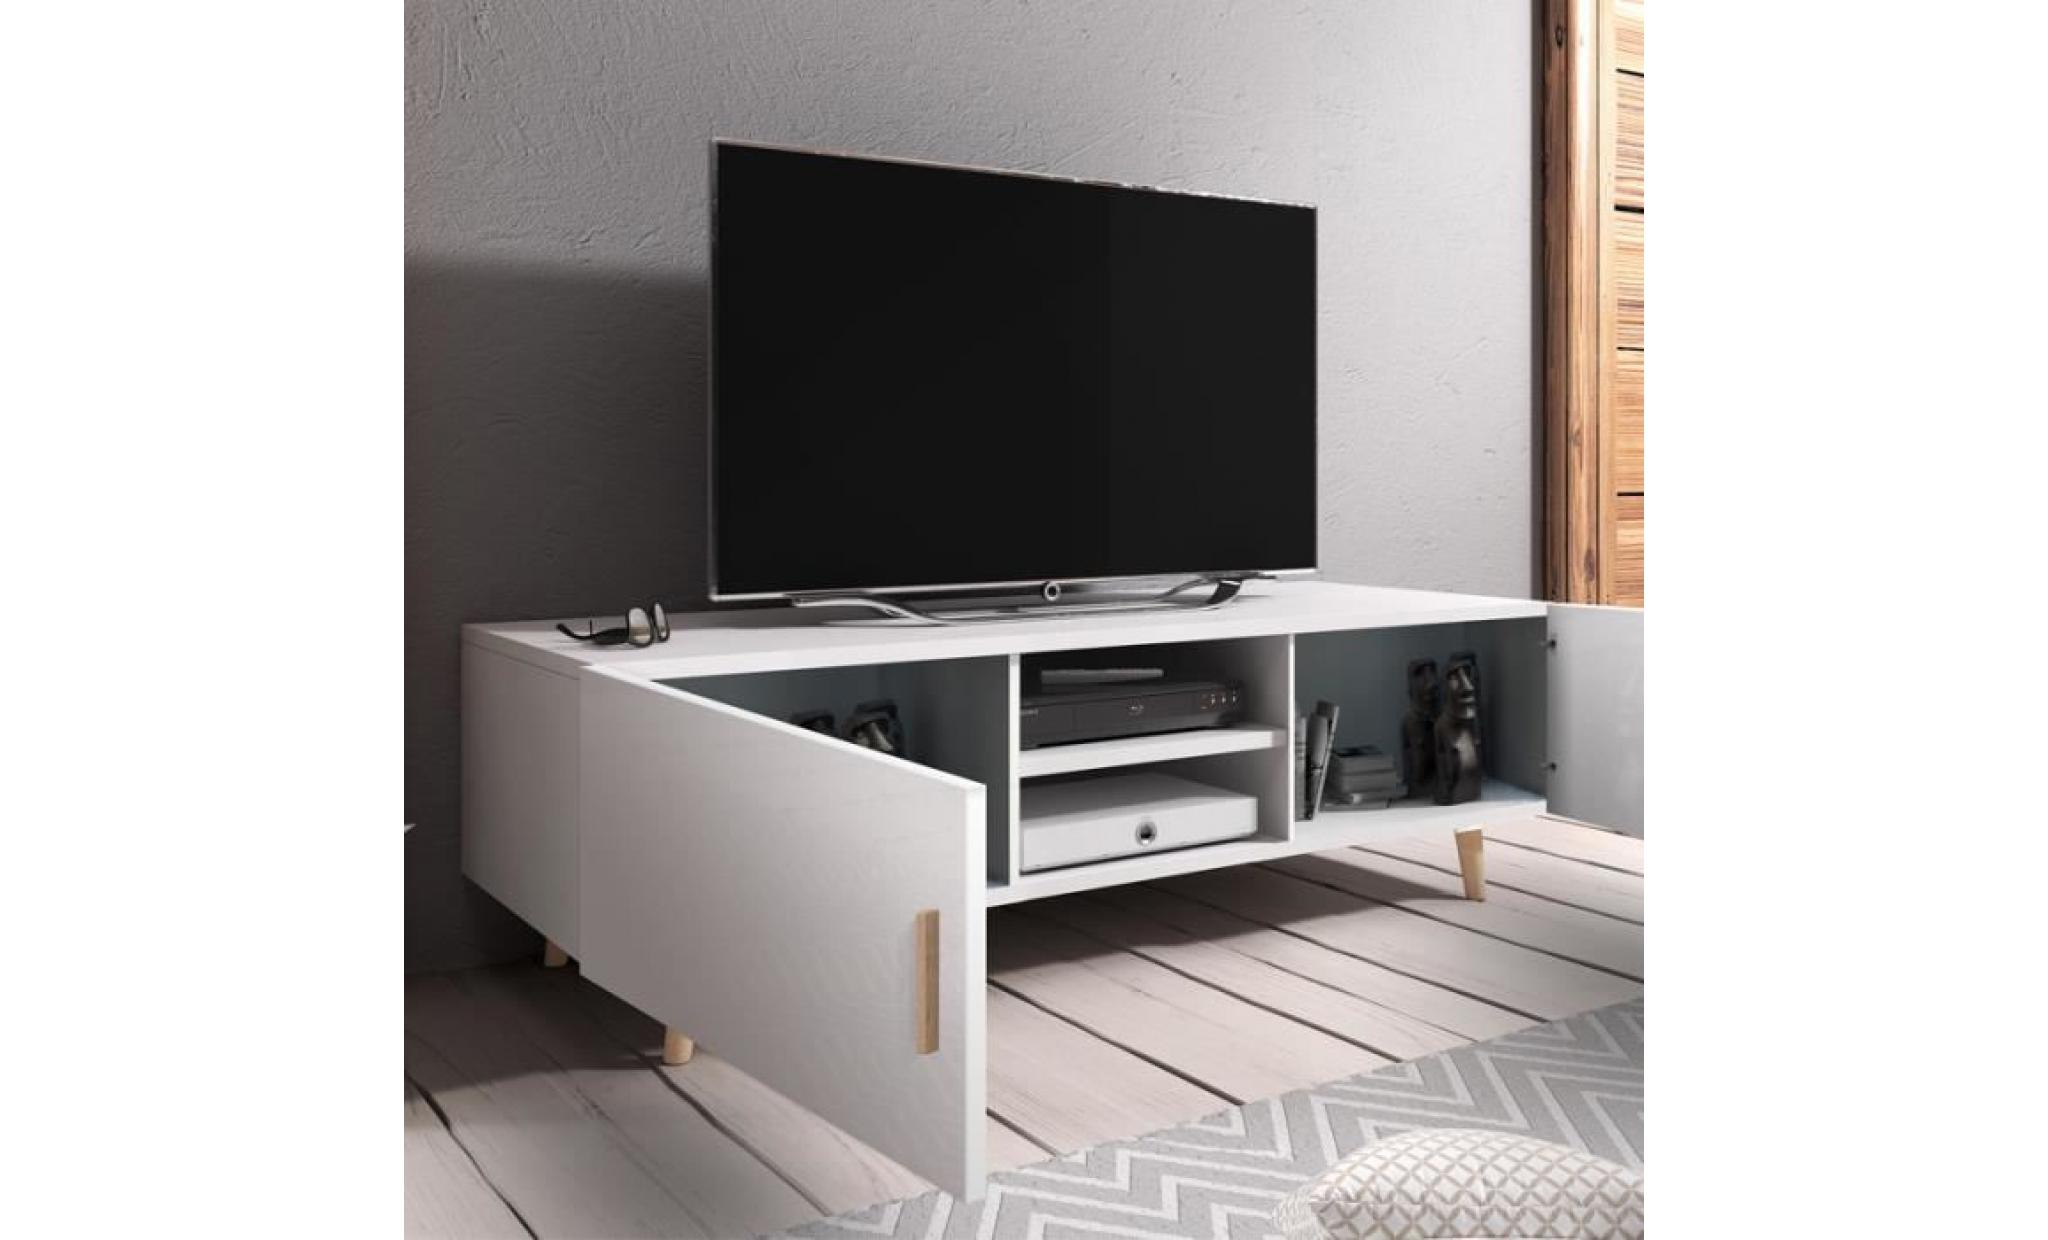 Meuble Tv Minimaliste Meuble Tv Meuble De Salon Rivano Ii 140 Cm Blanc Mat Blanc Brillant Style Scandinave Style Minimaliste